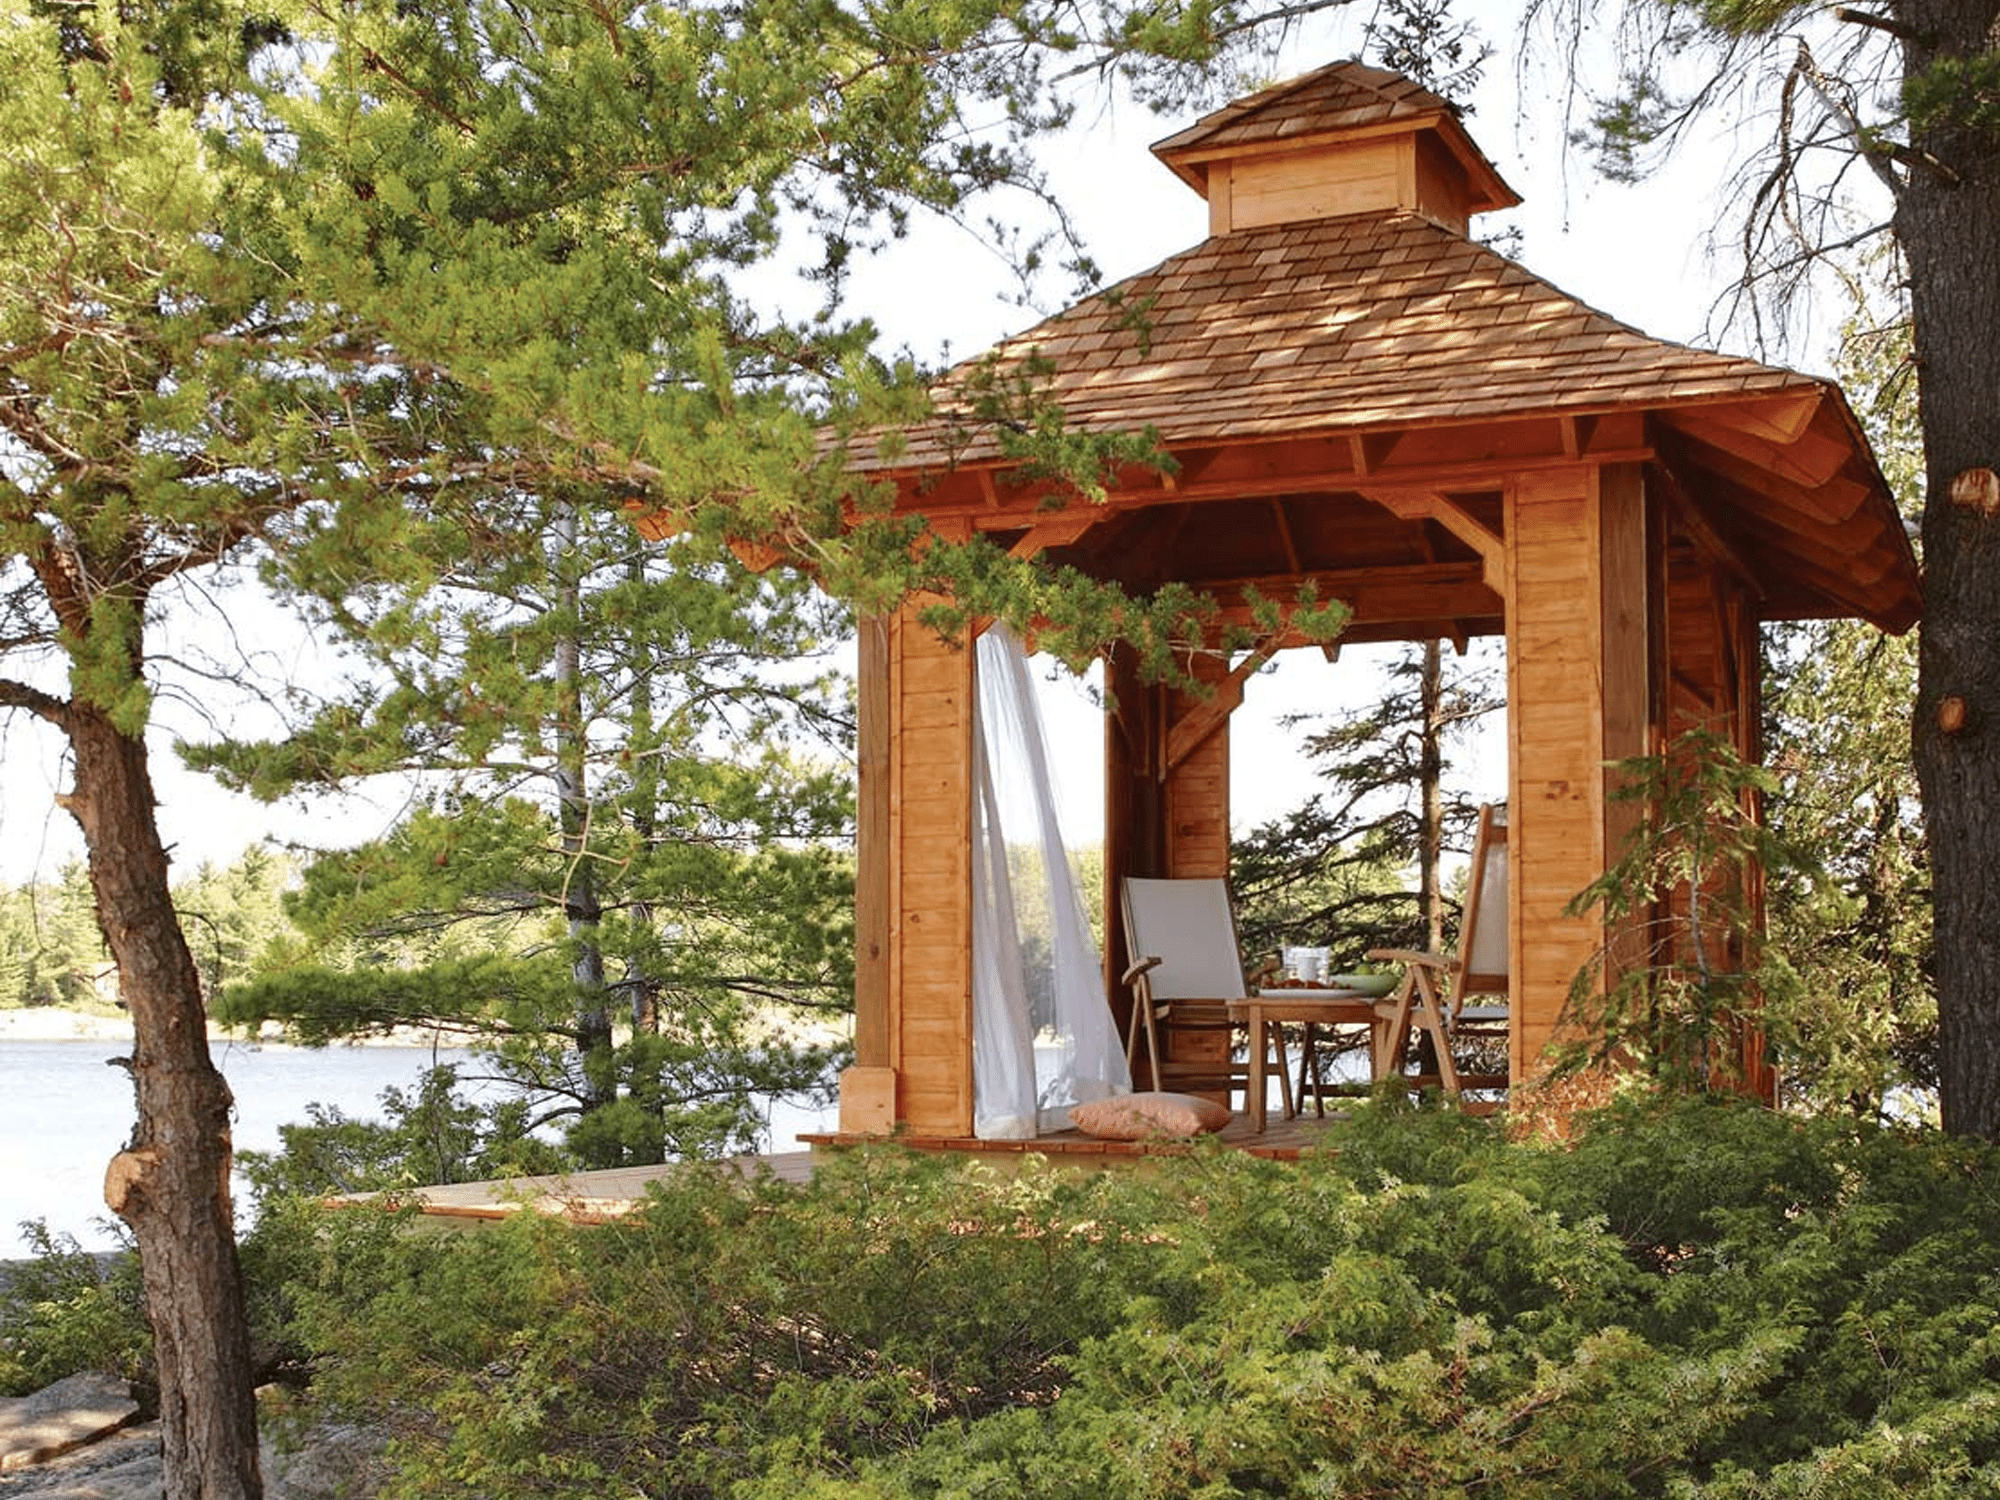 A gazebo by a lake.